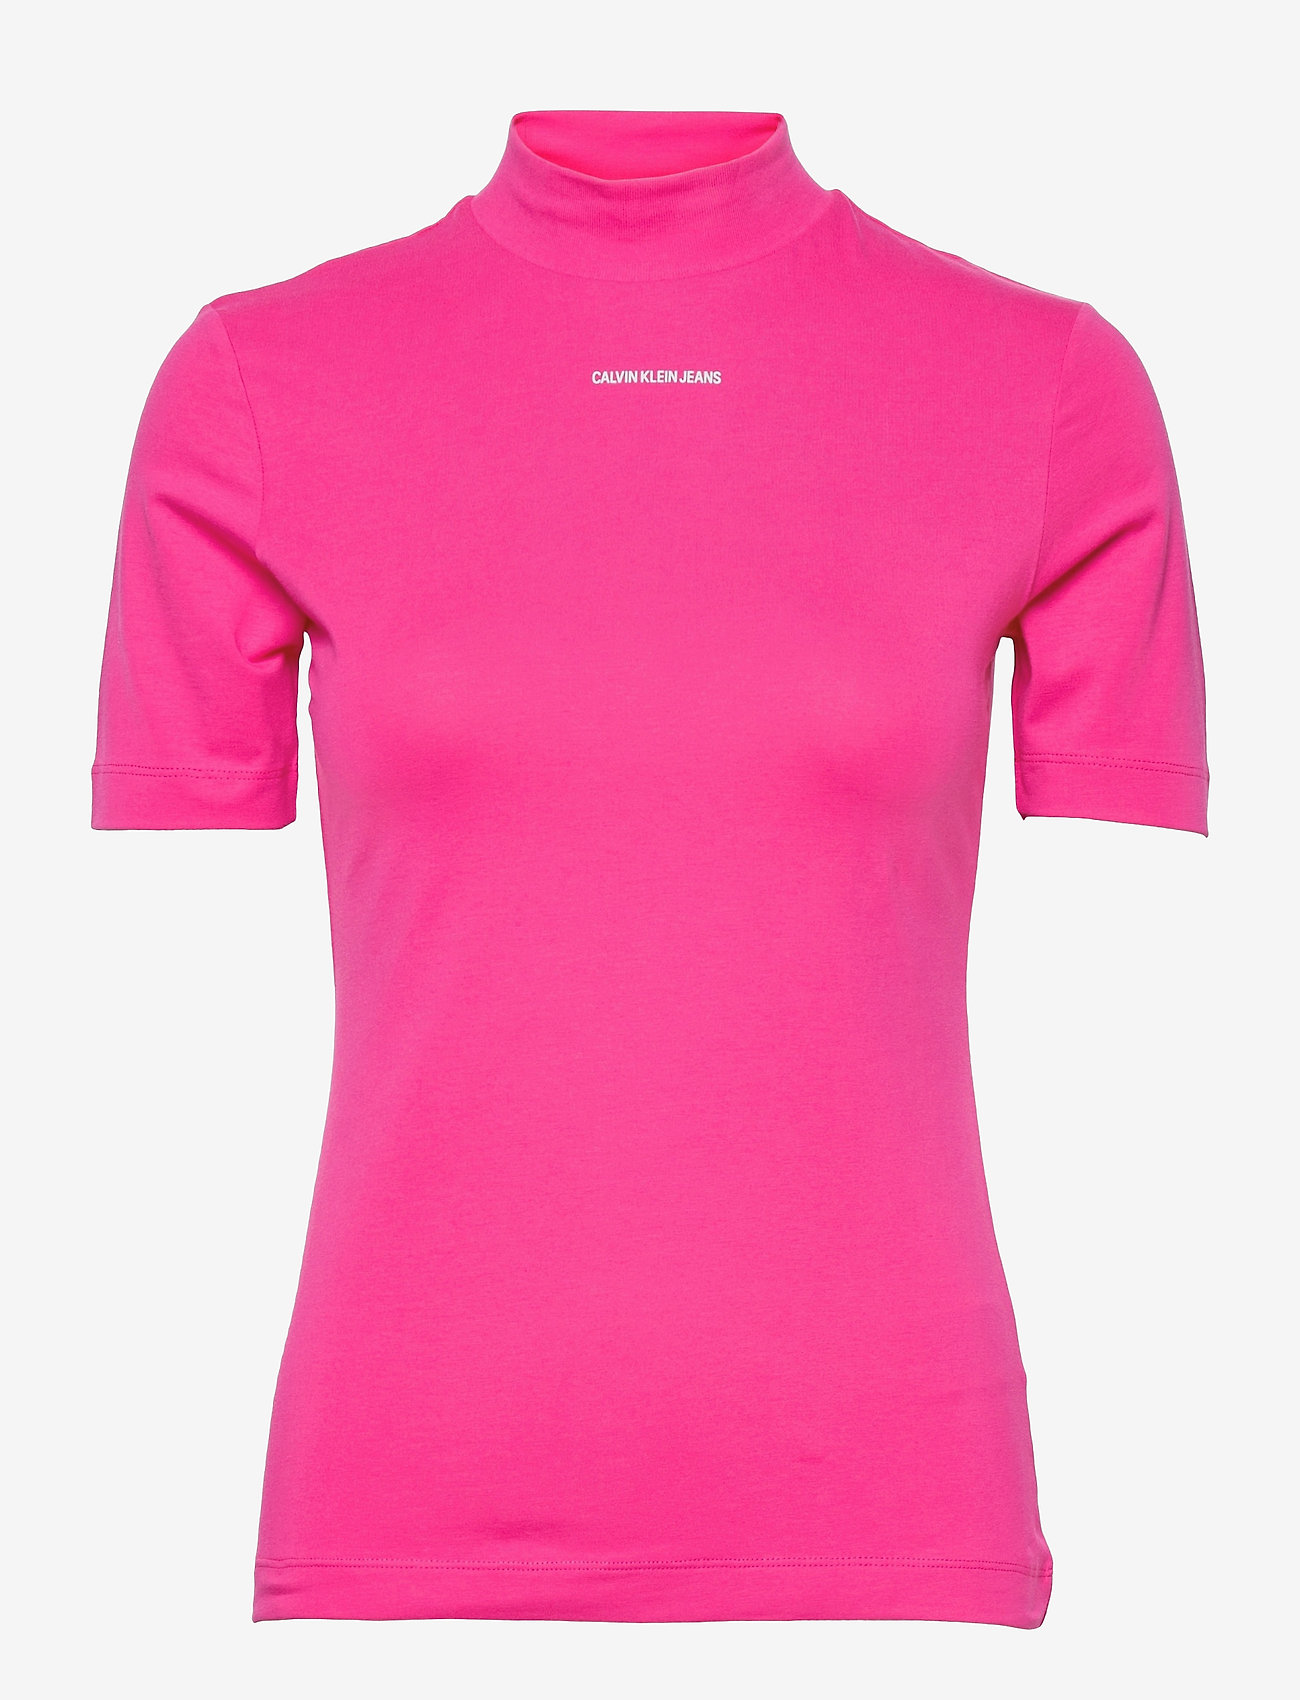 Calvin Klein Jeans - MICRO BRANDING STRETCH MOCK NECK - t-shirts - party pink - 0